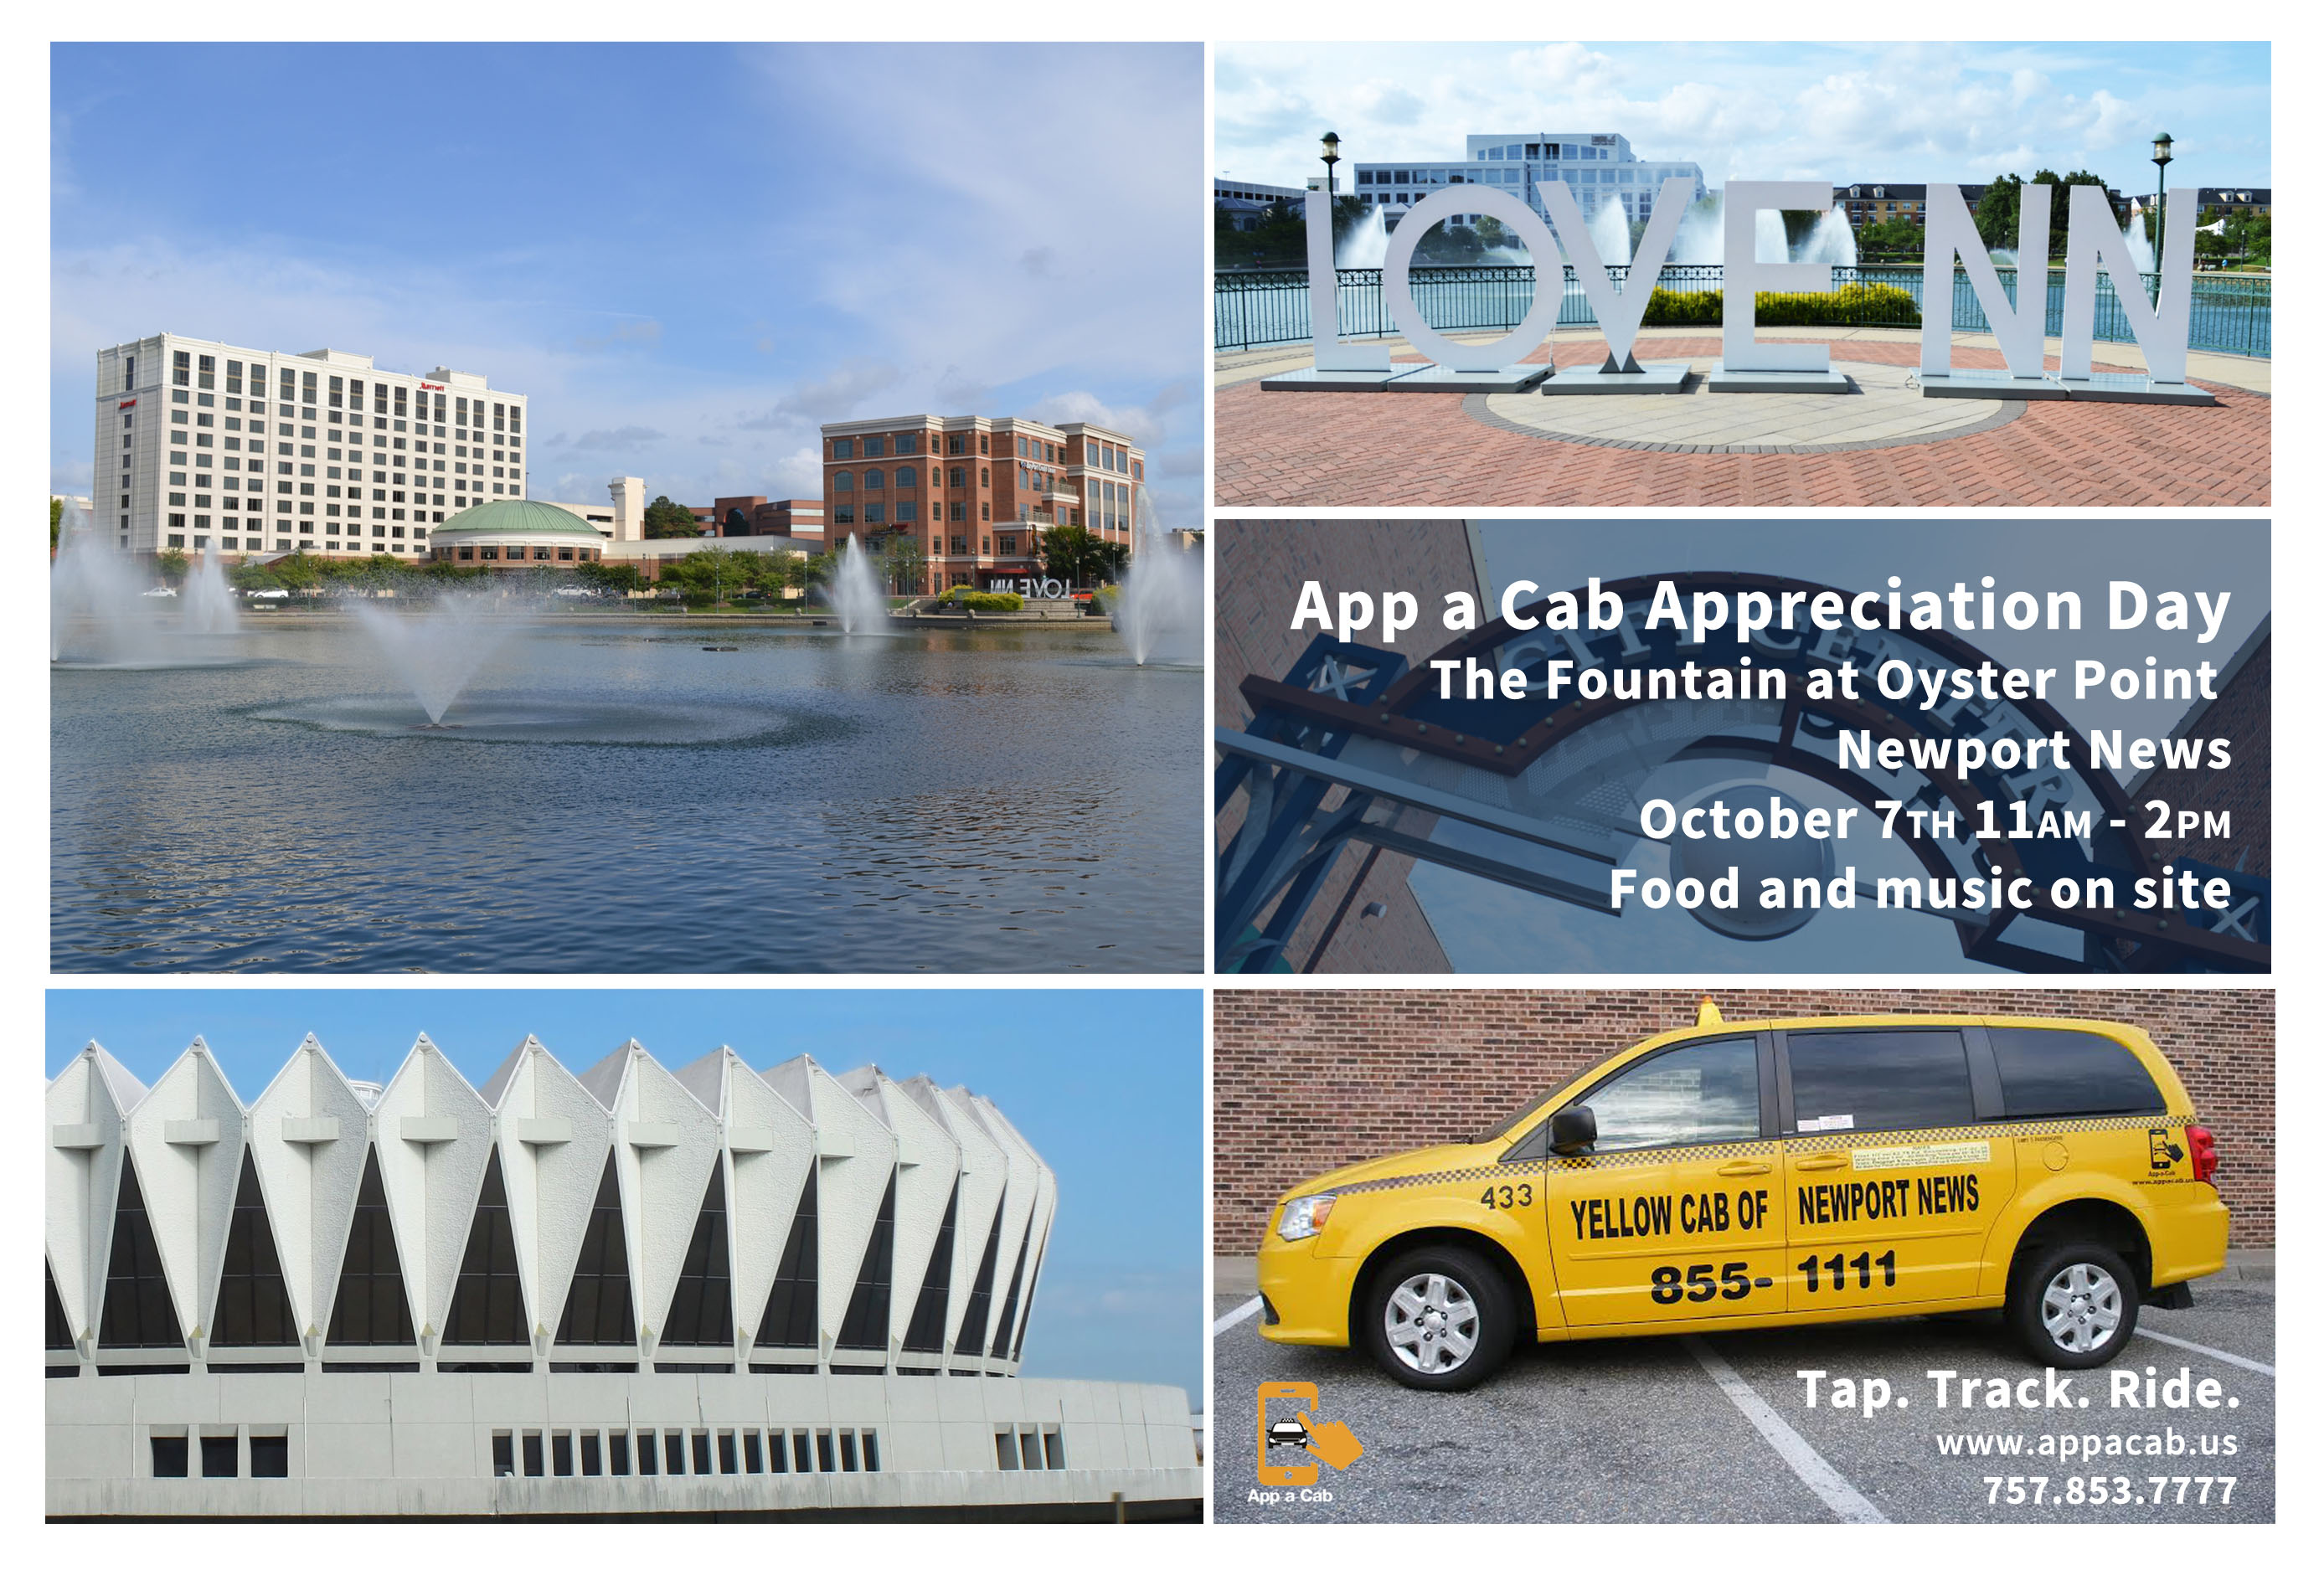 App a Cab Appreciation Day